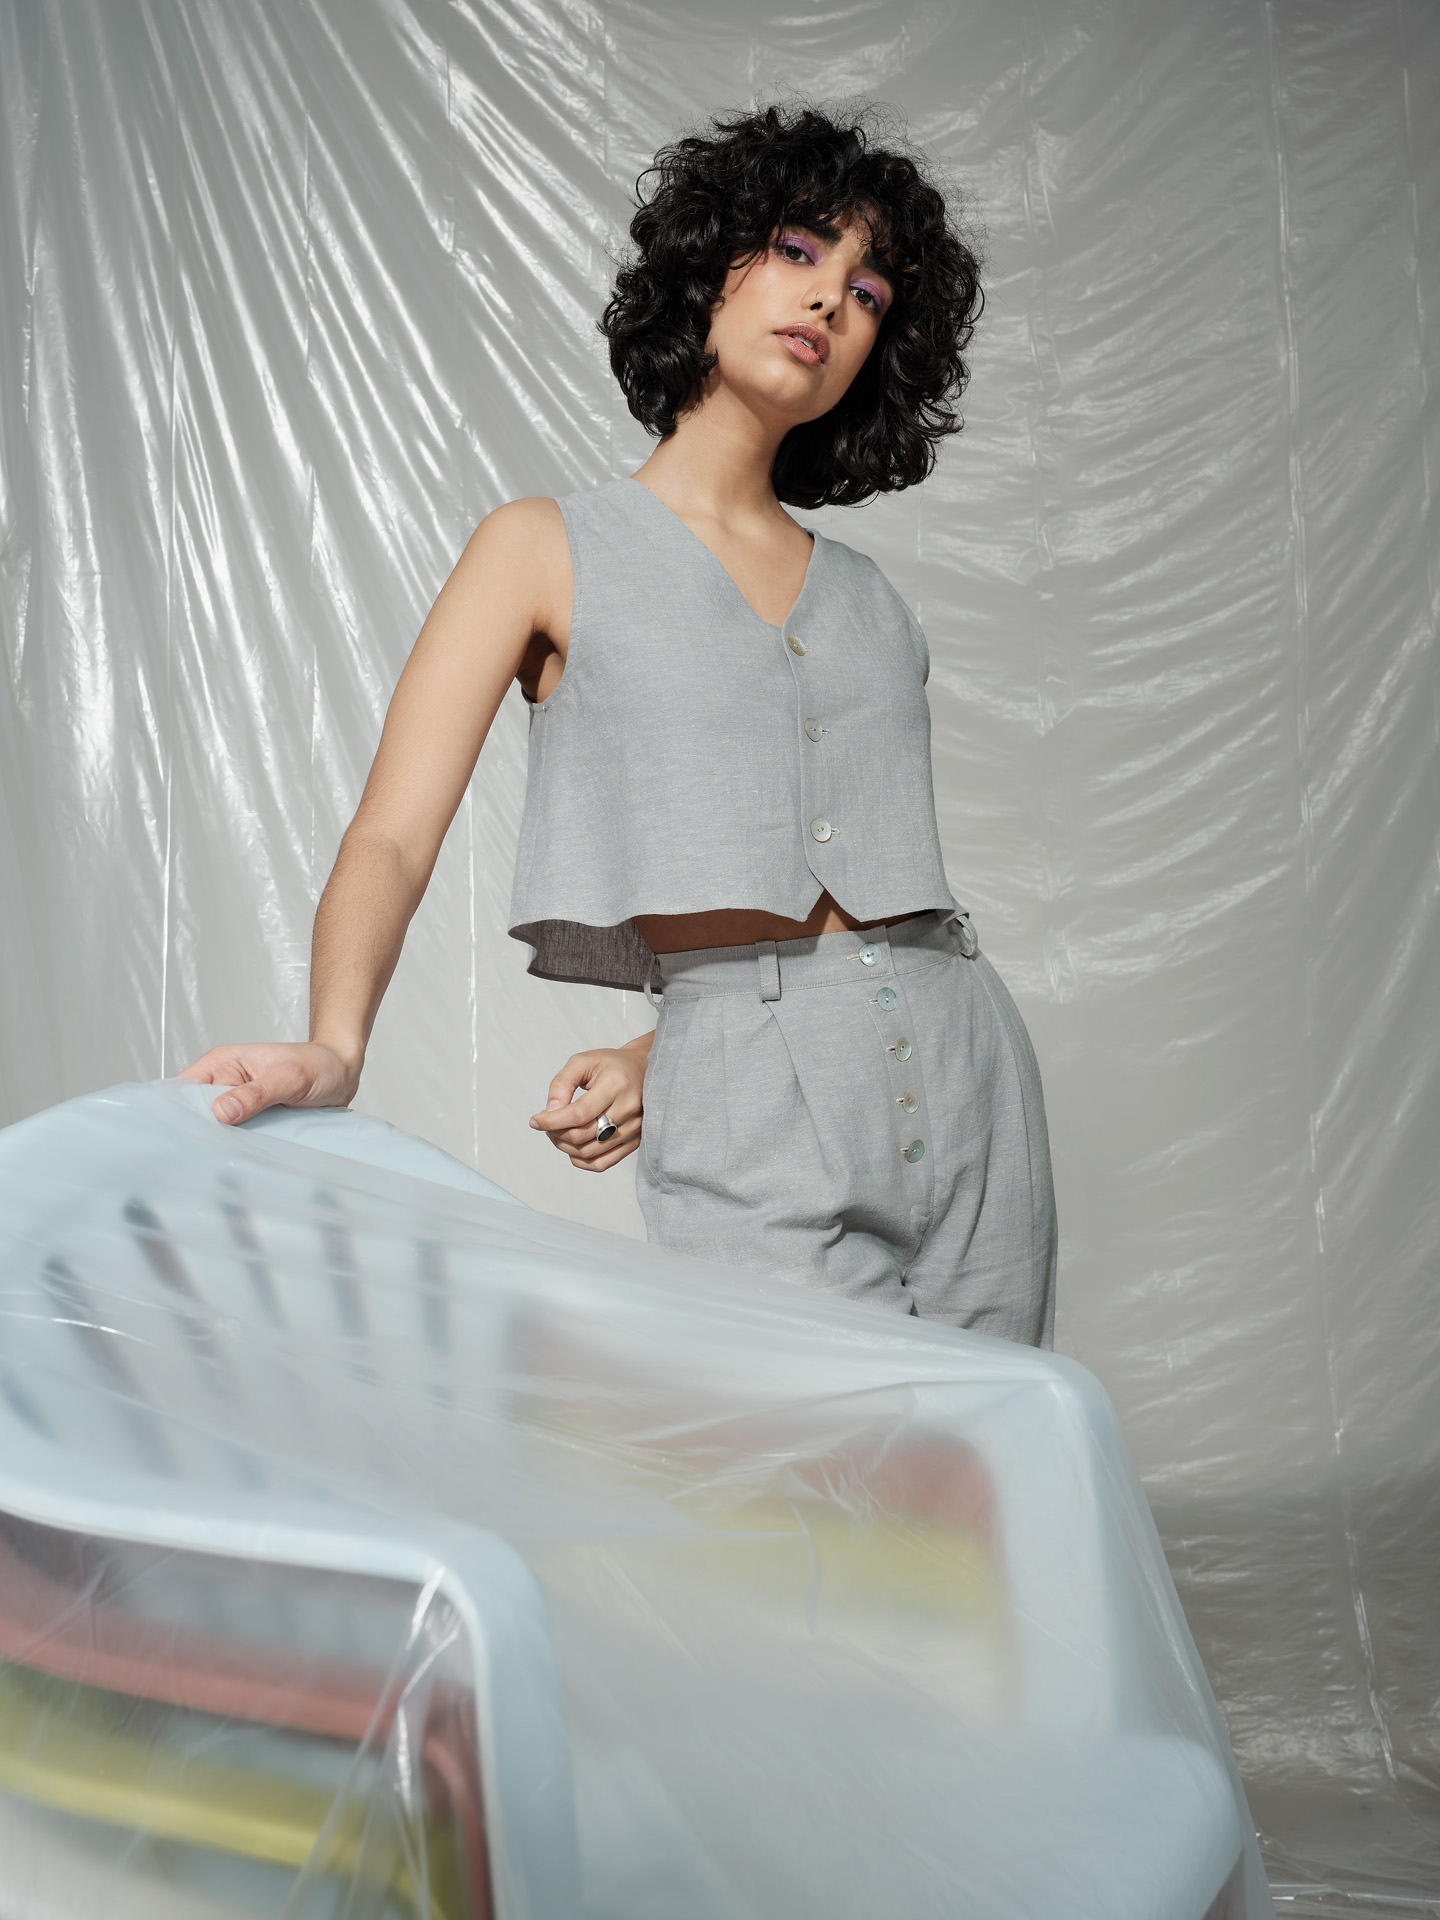 curly haired female model wearing grey linen ensemble standing next to stack of colorful plastic chairs covered in plastic construction sheet looking at camera photographed by Maxyme G Delisle with artistic direction and styling by Studio TB